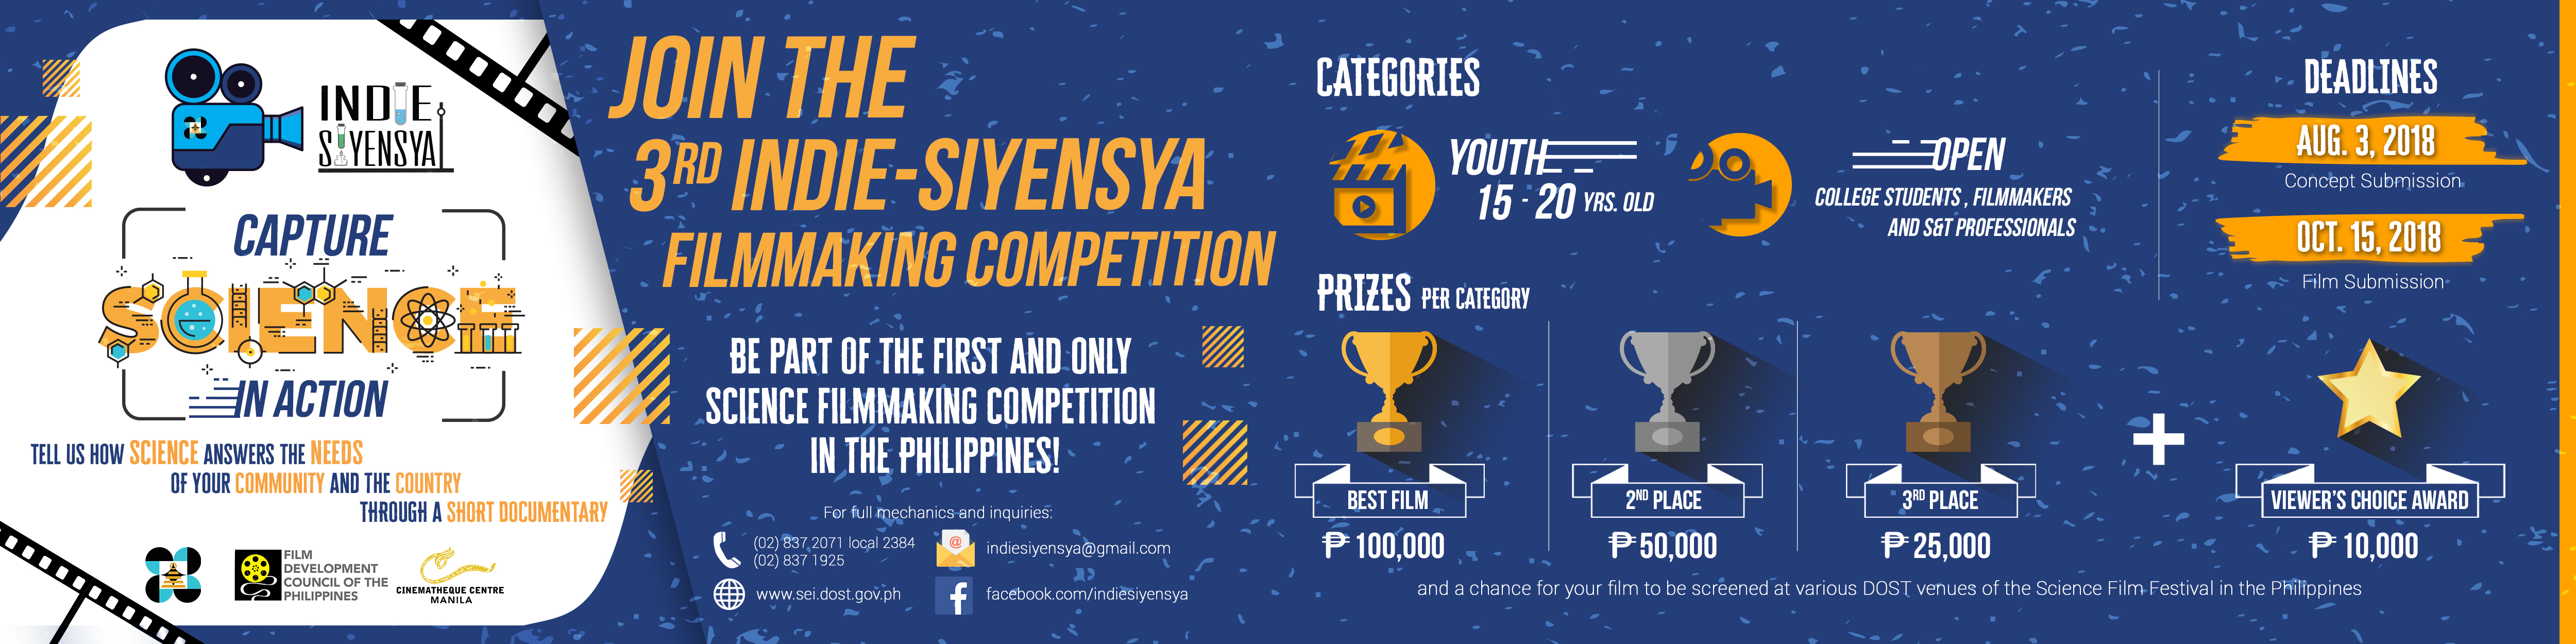 Indie-Siyensya Film-Making Competition